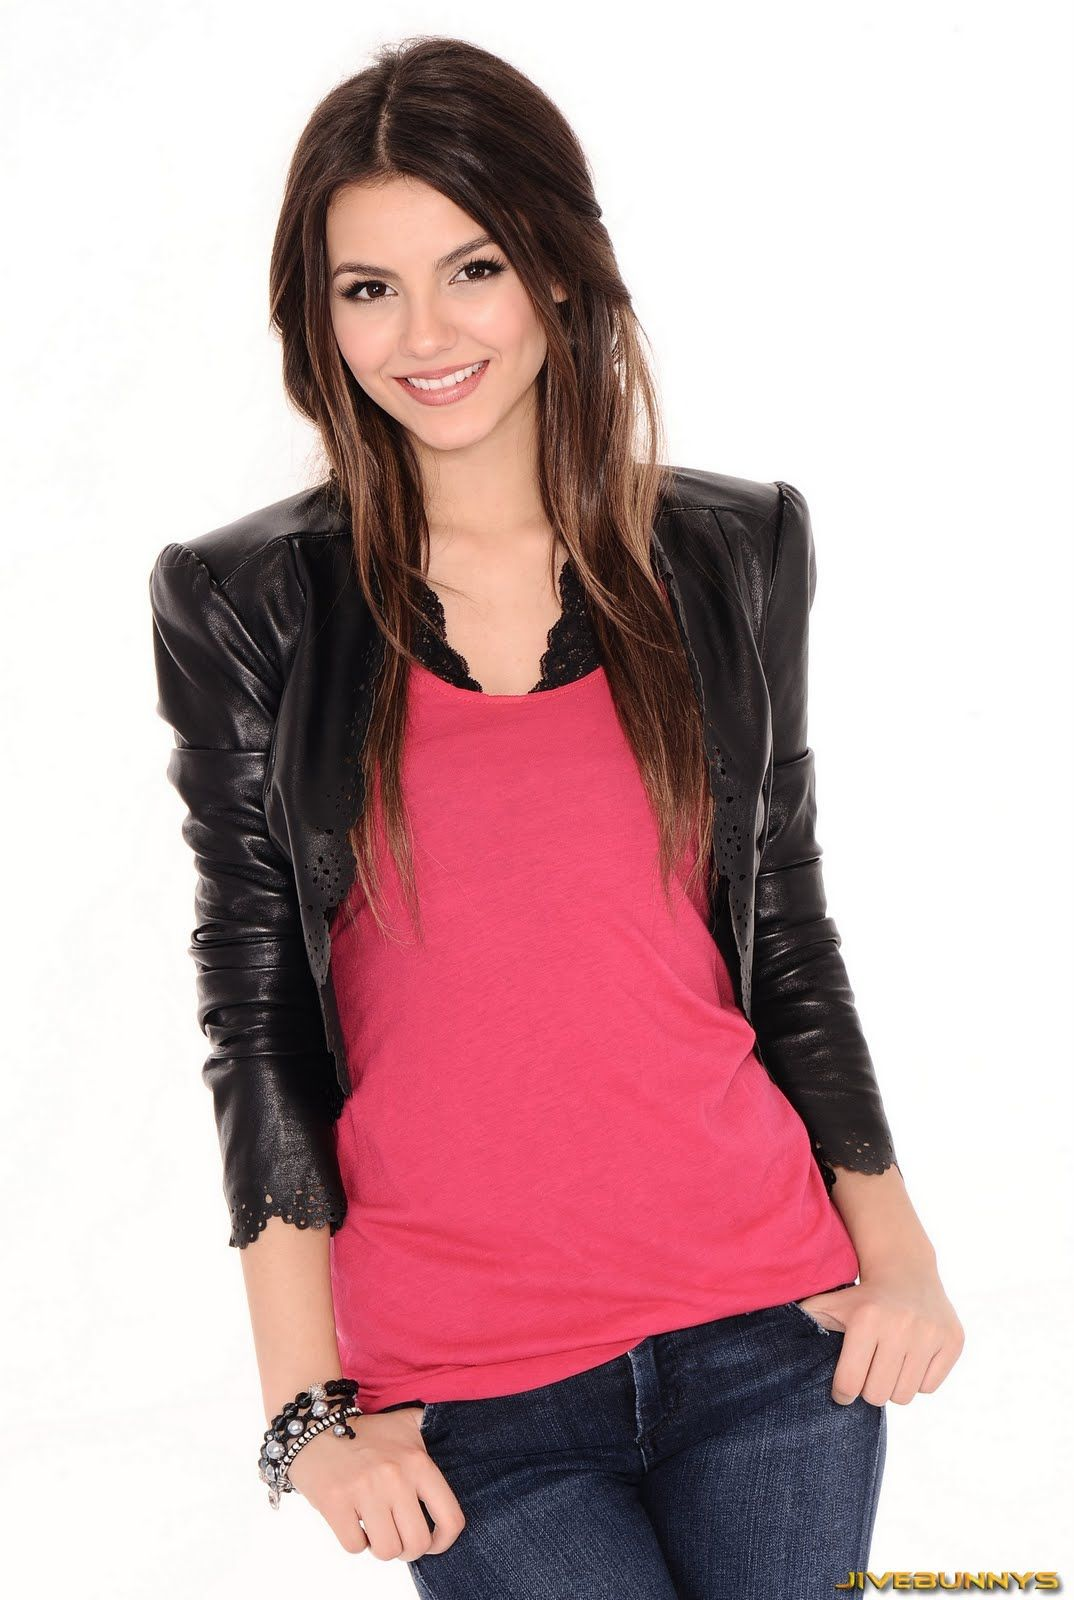 Victoria Justice Actress Pictures and Image Gallery 12